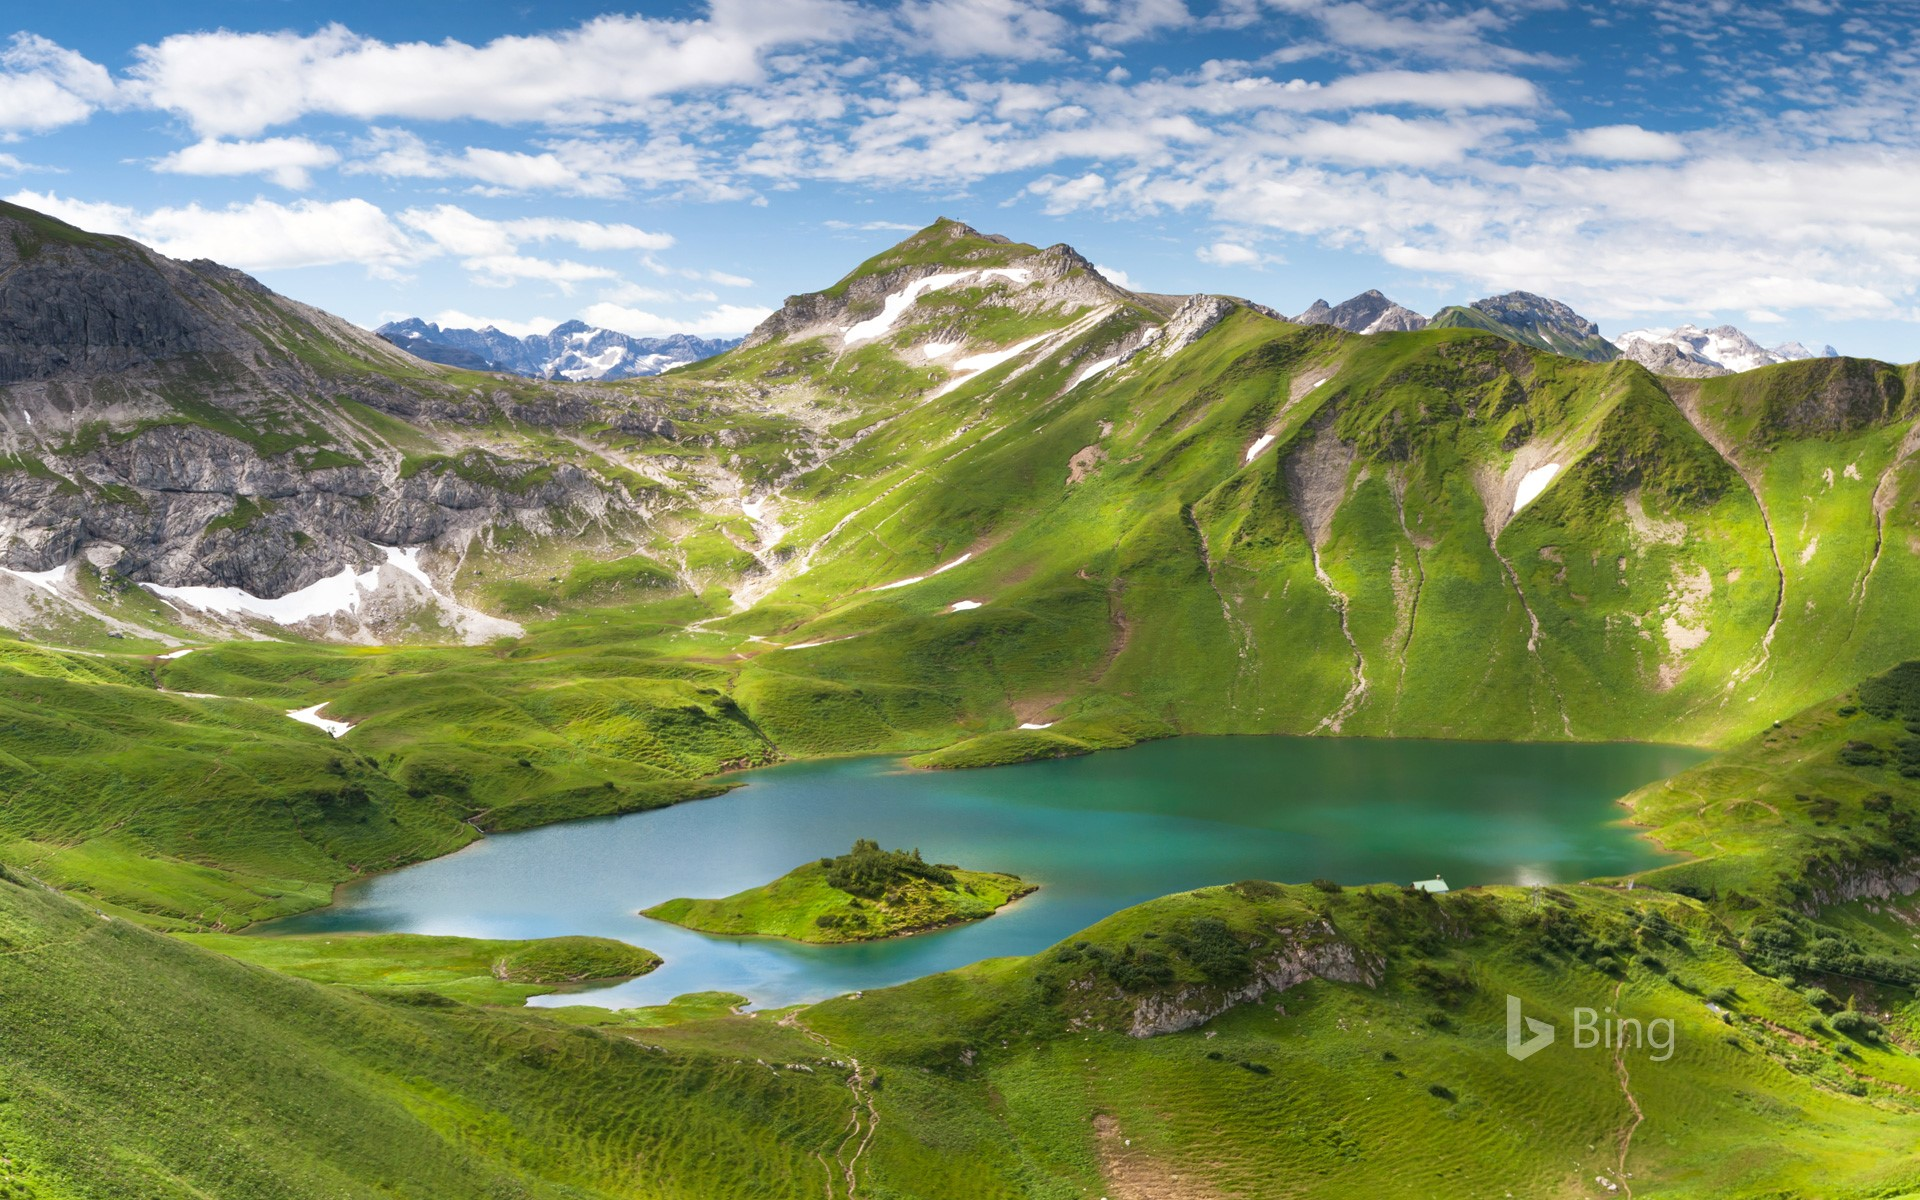 Panorama of the Schrecksee, a lake in Bavaria, Germany